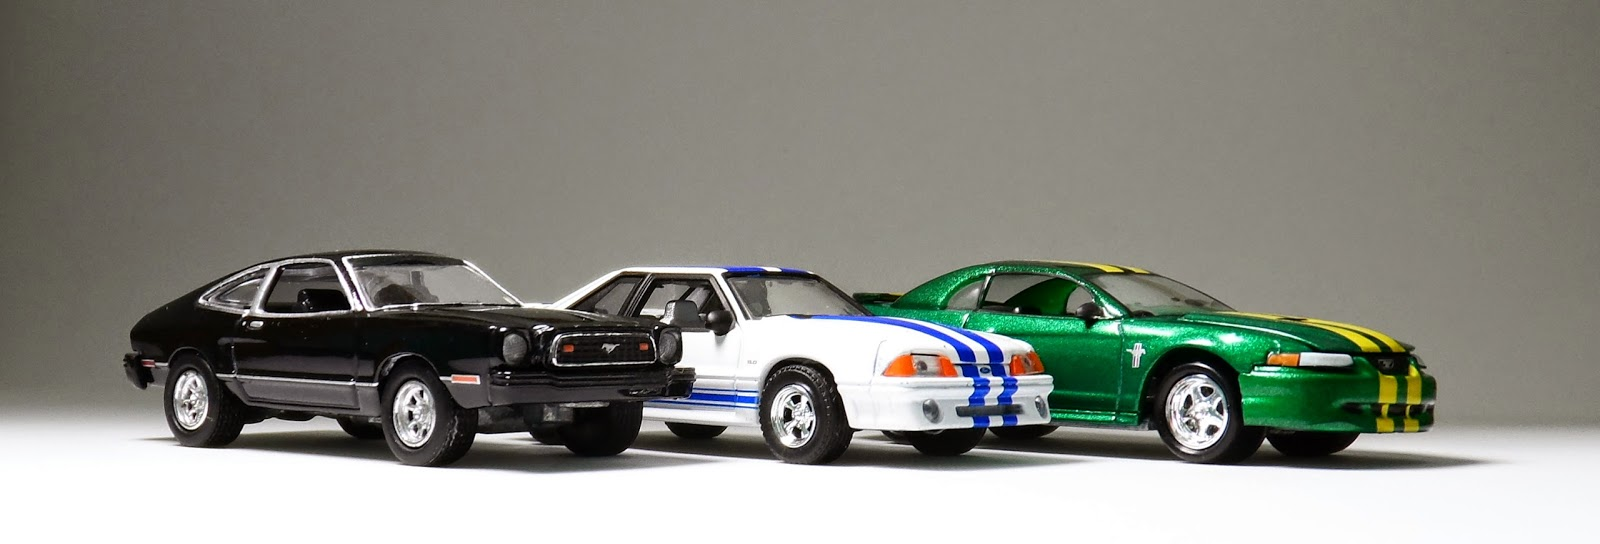 Especial Ford Mustang 50 anos - Parte II